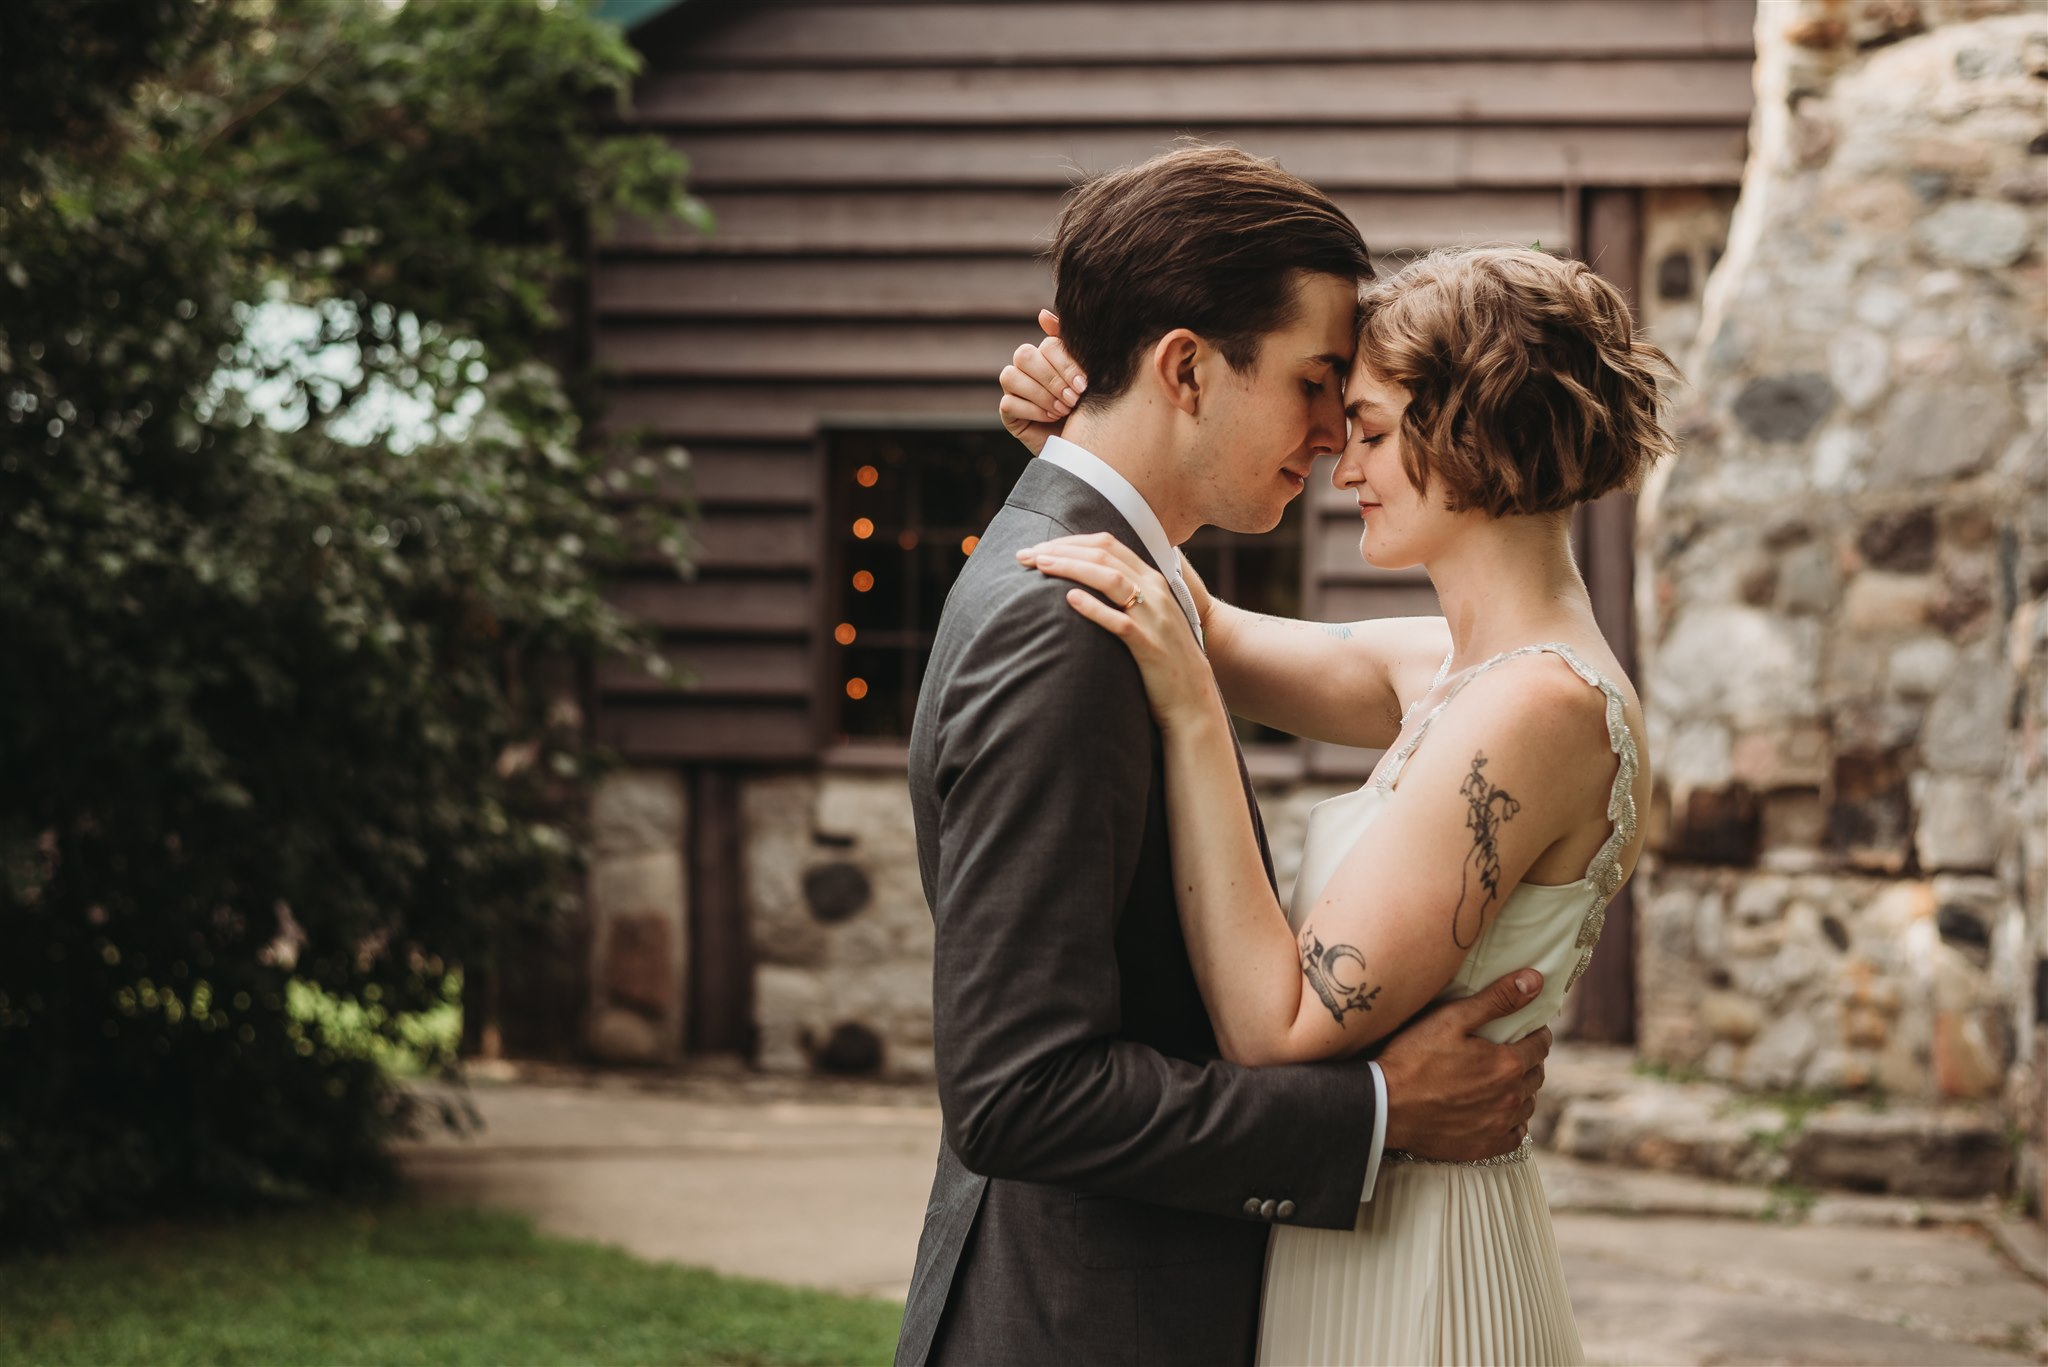 intimate wedding photos taken at Fanshawe Conservation Area